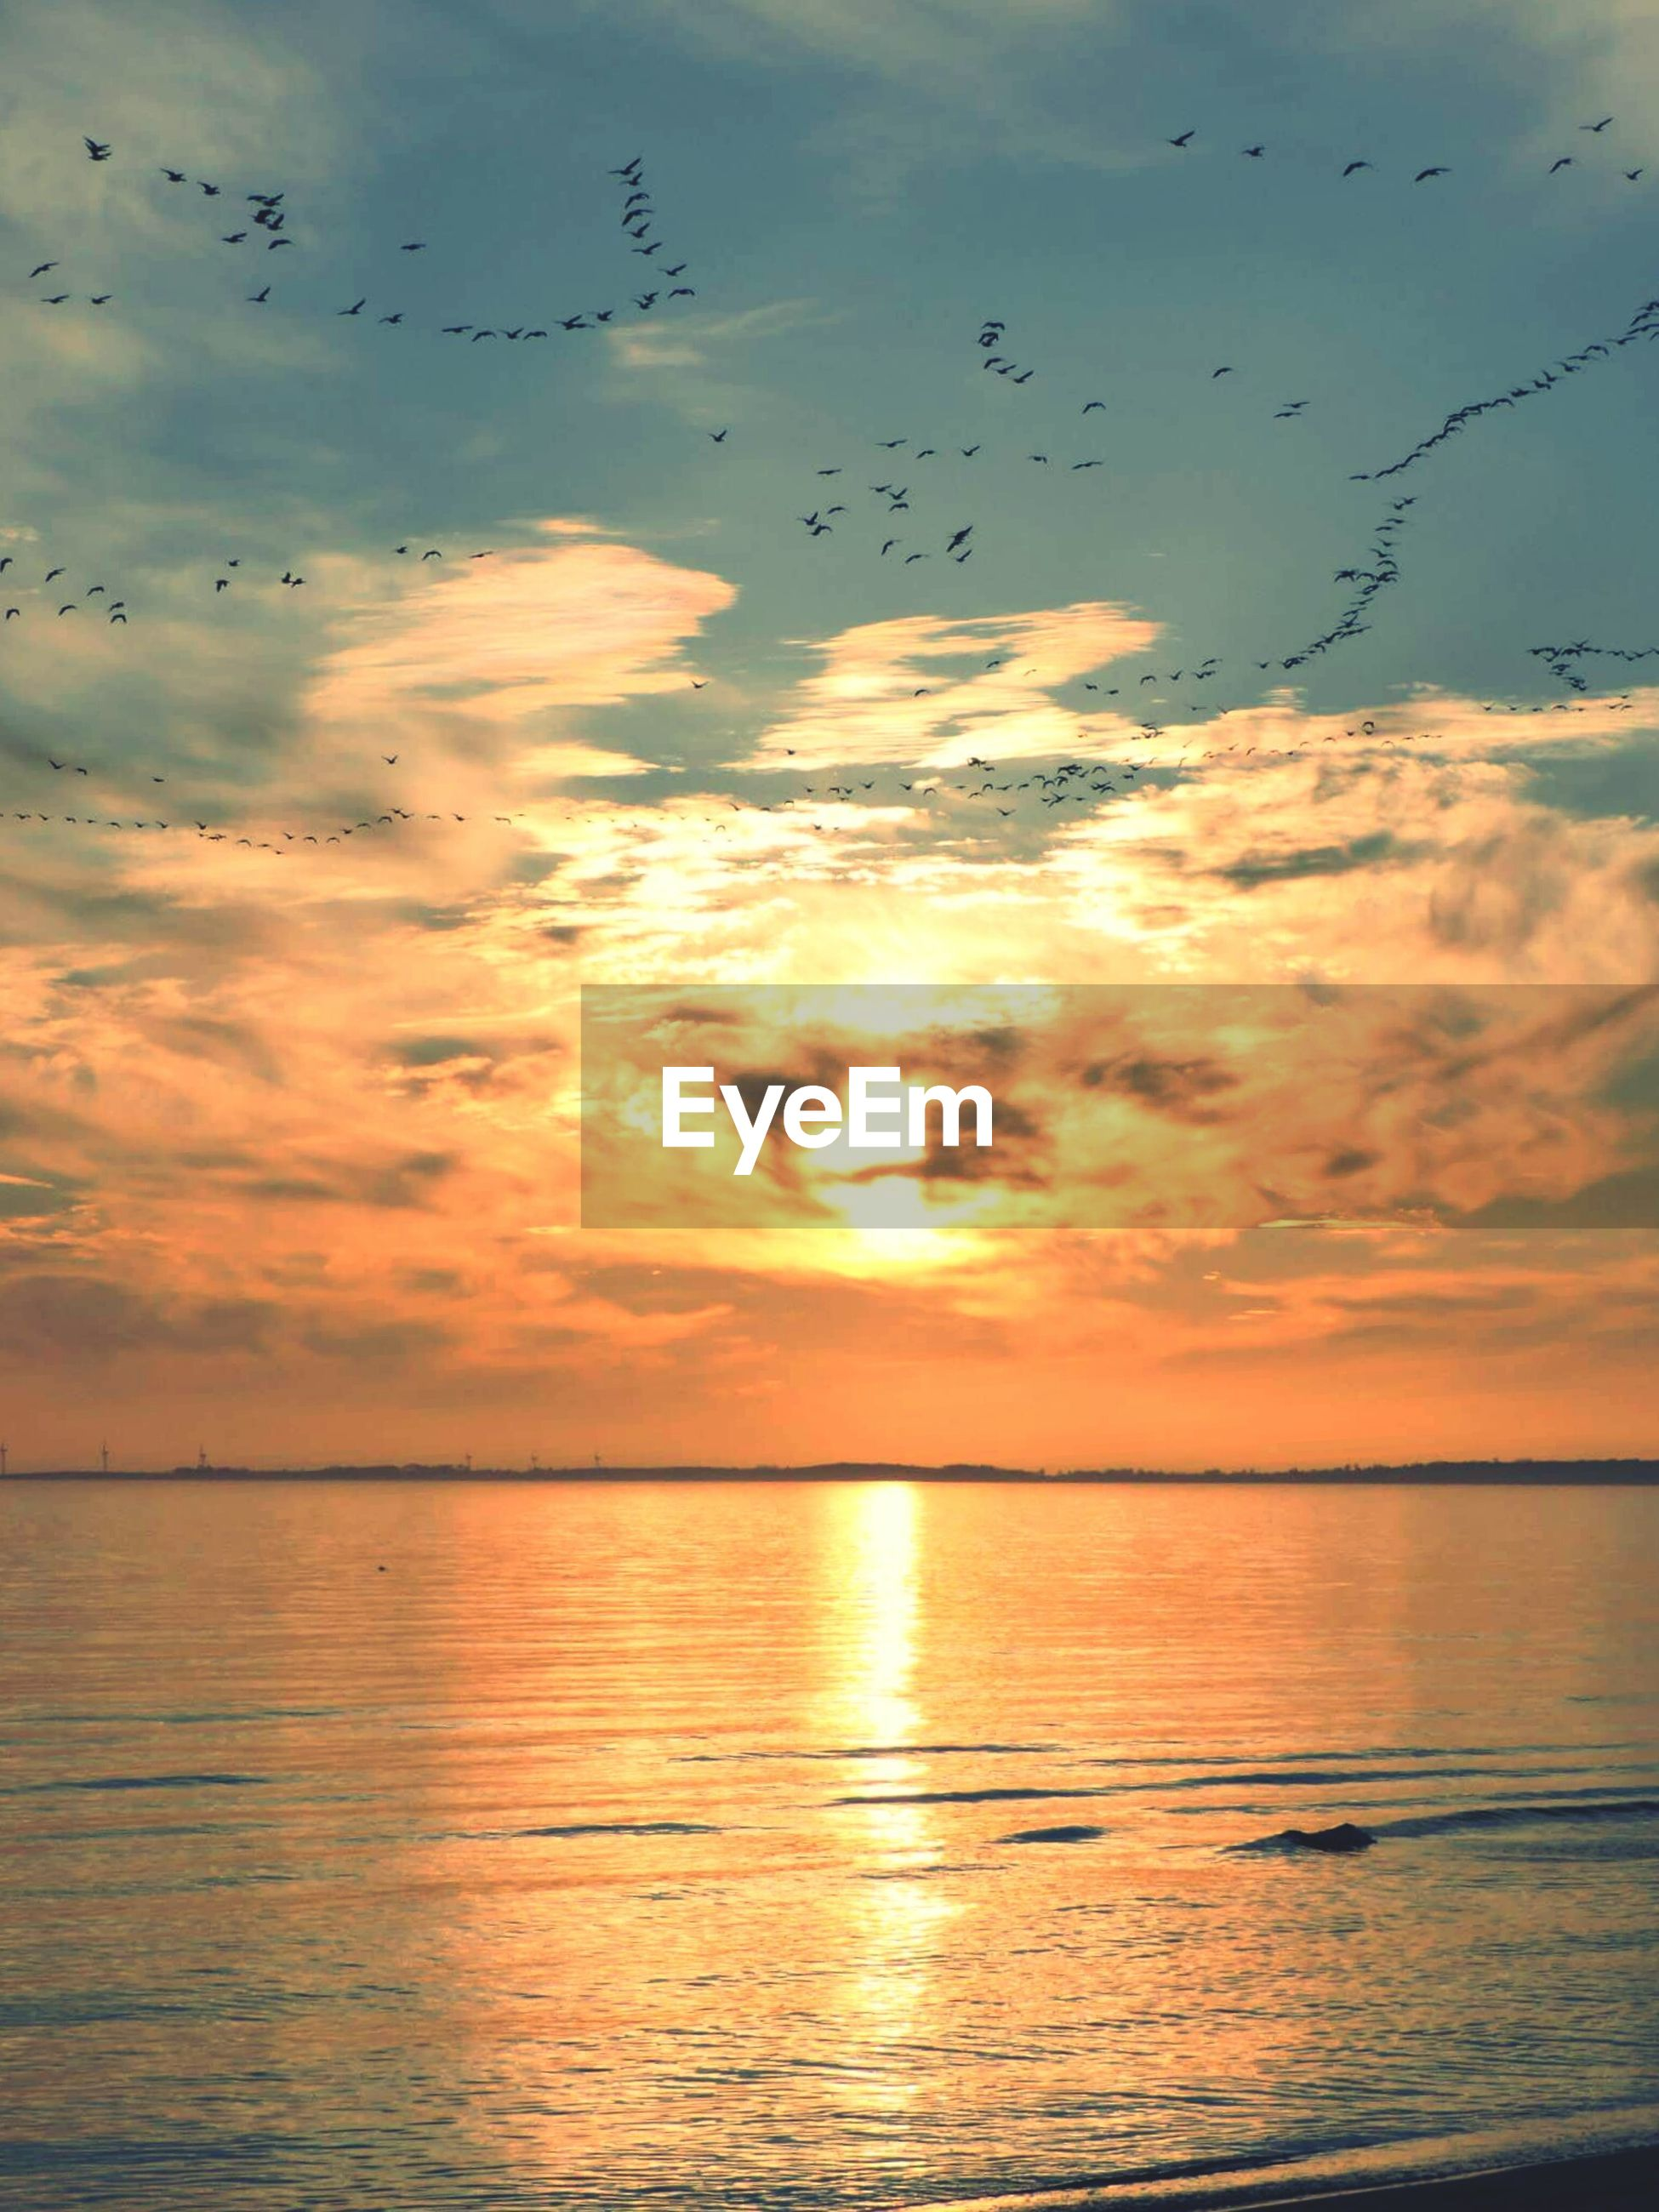 sunset, bird, water, horizon over water, sea, sky, animal themes, flying, scenics, tranquil scene, beauty in nature, tranquility, animals in the wild, wildlife, orange color, idyllic, cloud - sky, silhouette, nature, reflection